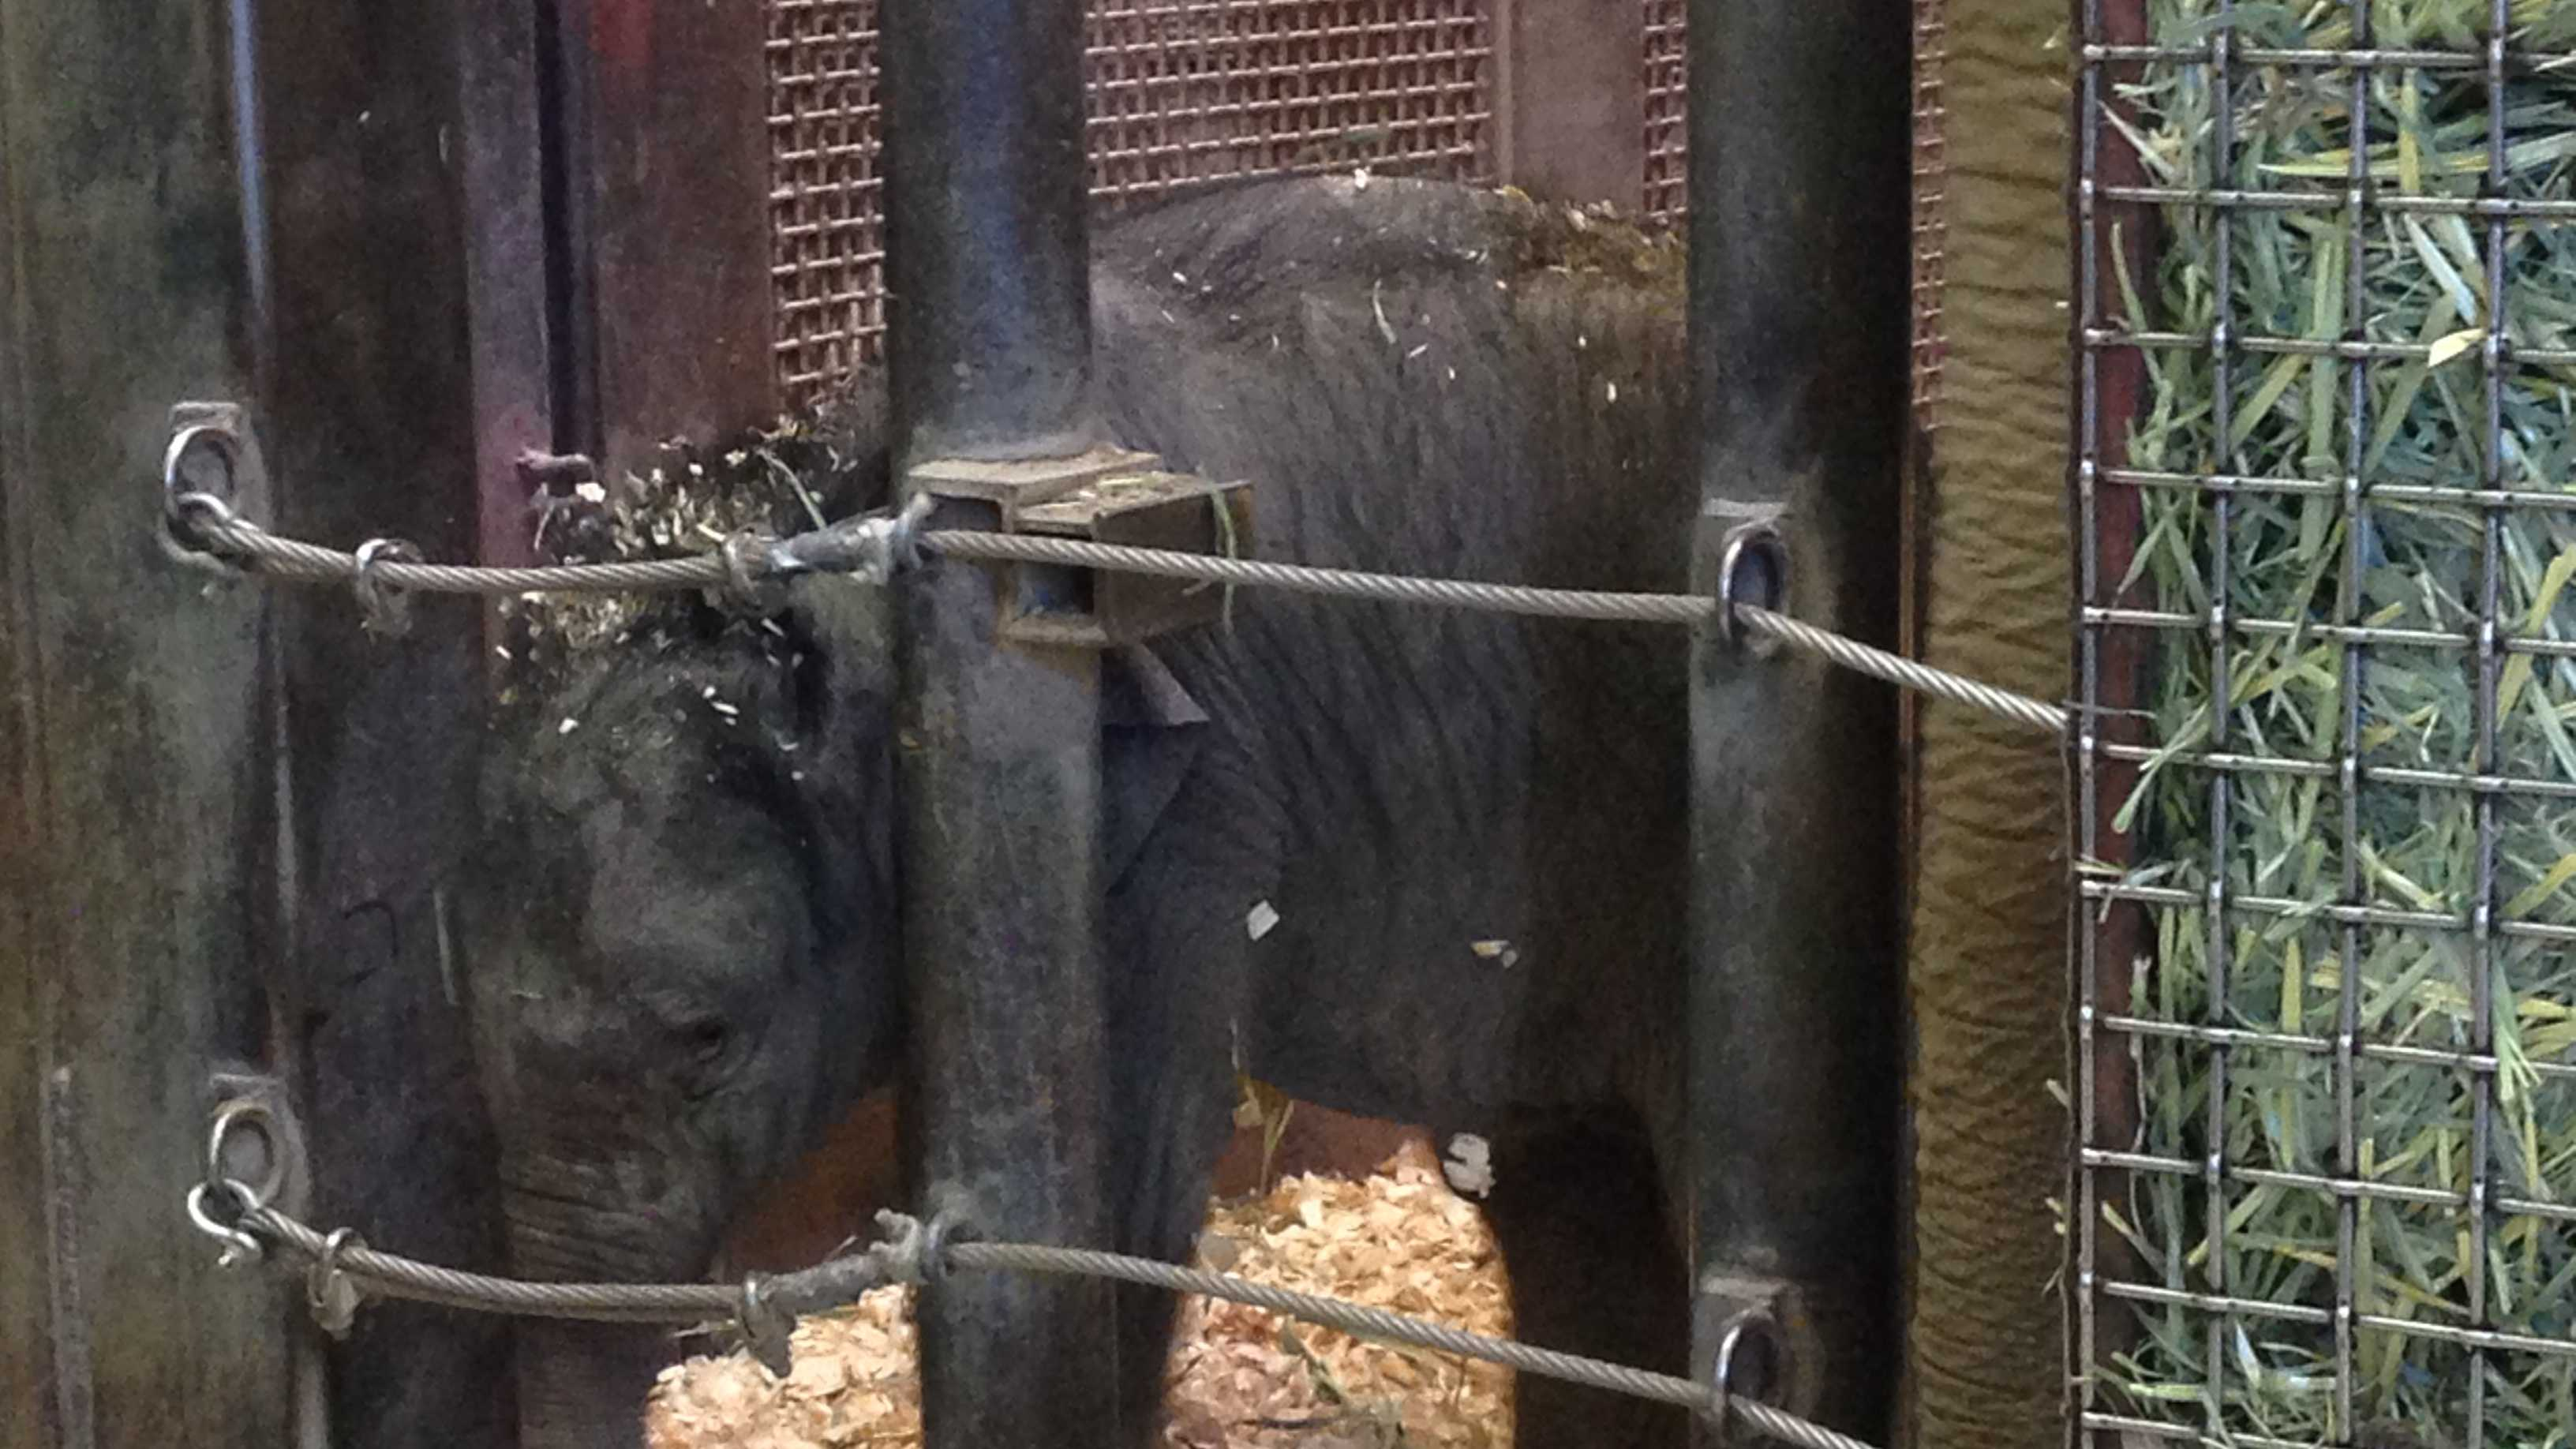 Albuquerque's zoo is welcoming the newest member of its elephant herd.